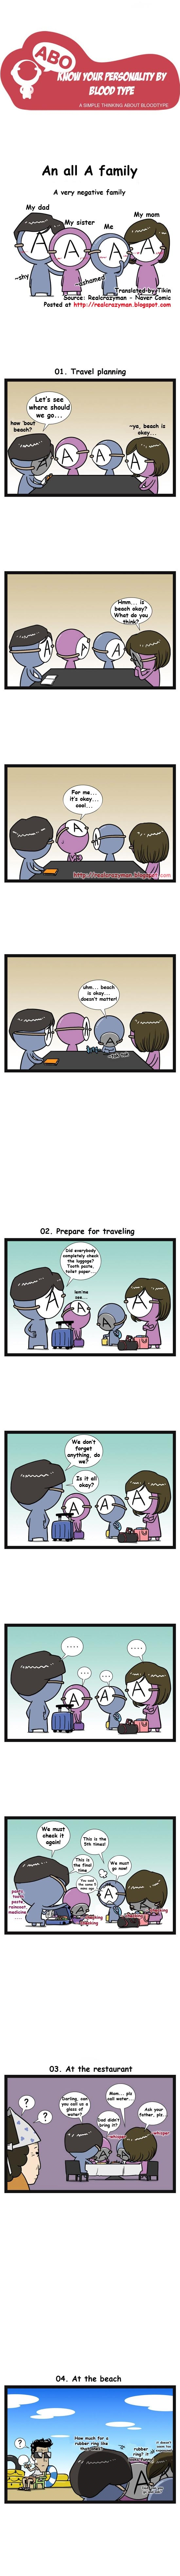 Blood type when travelling..